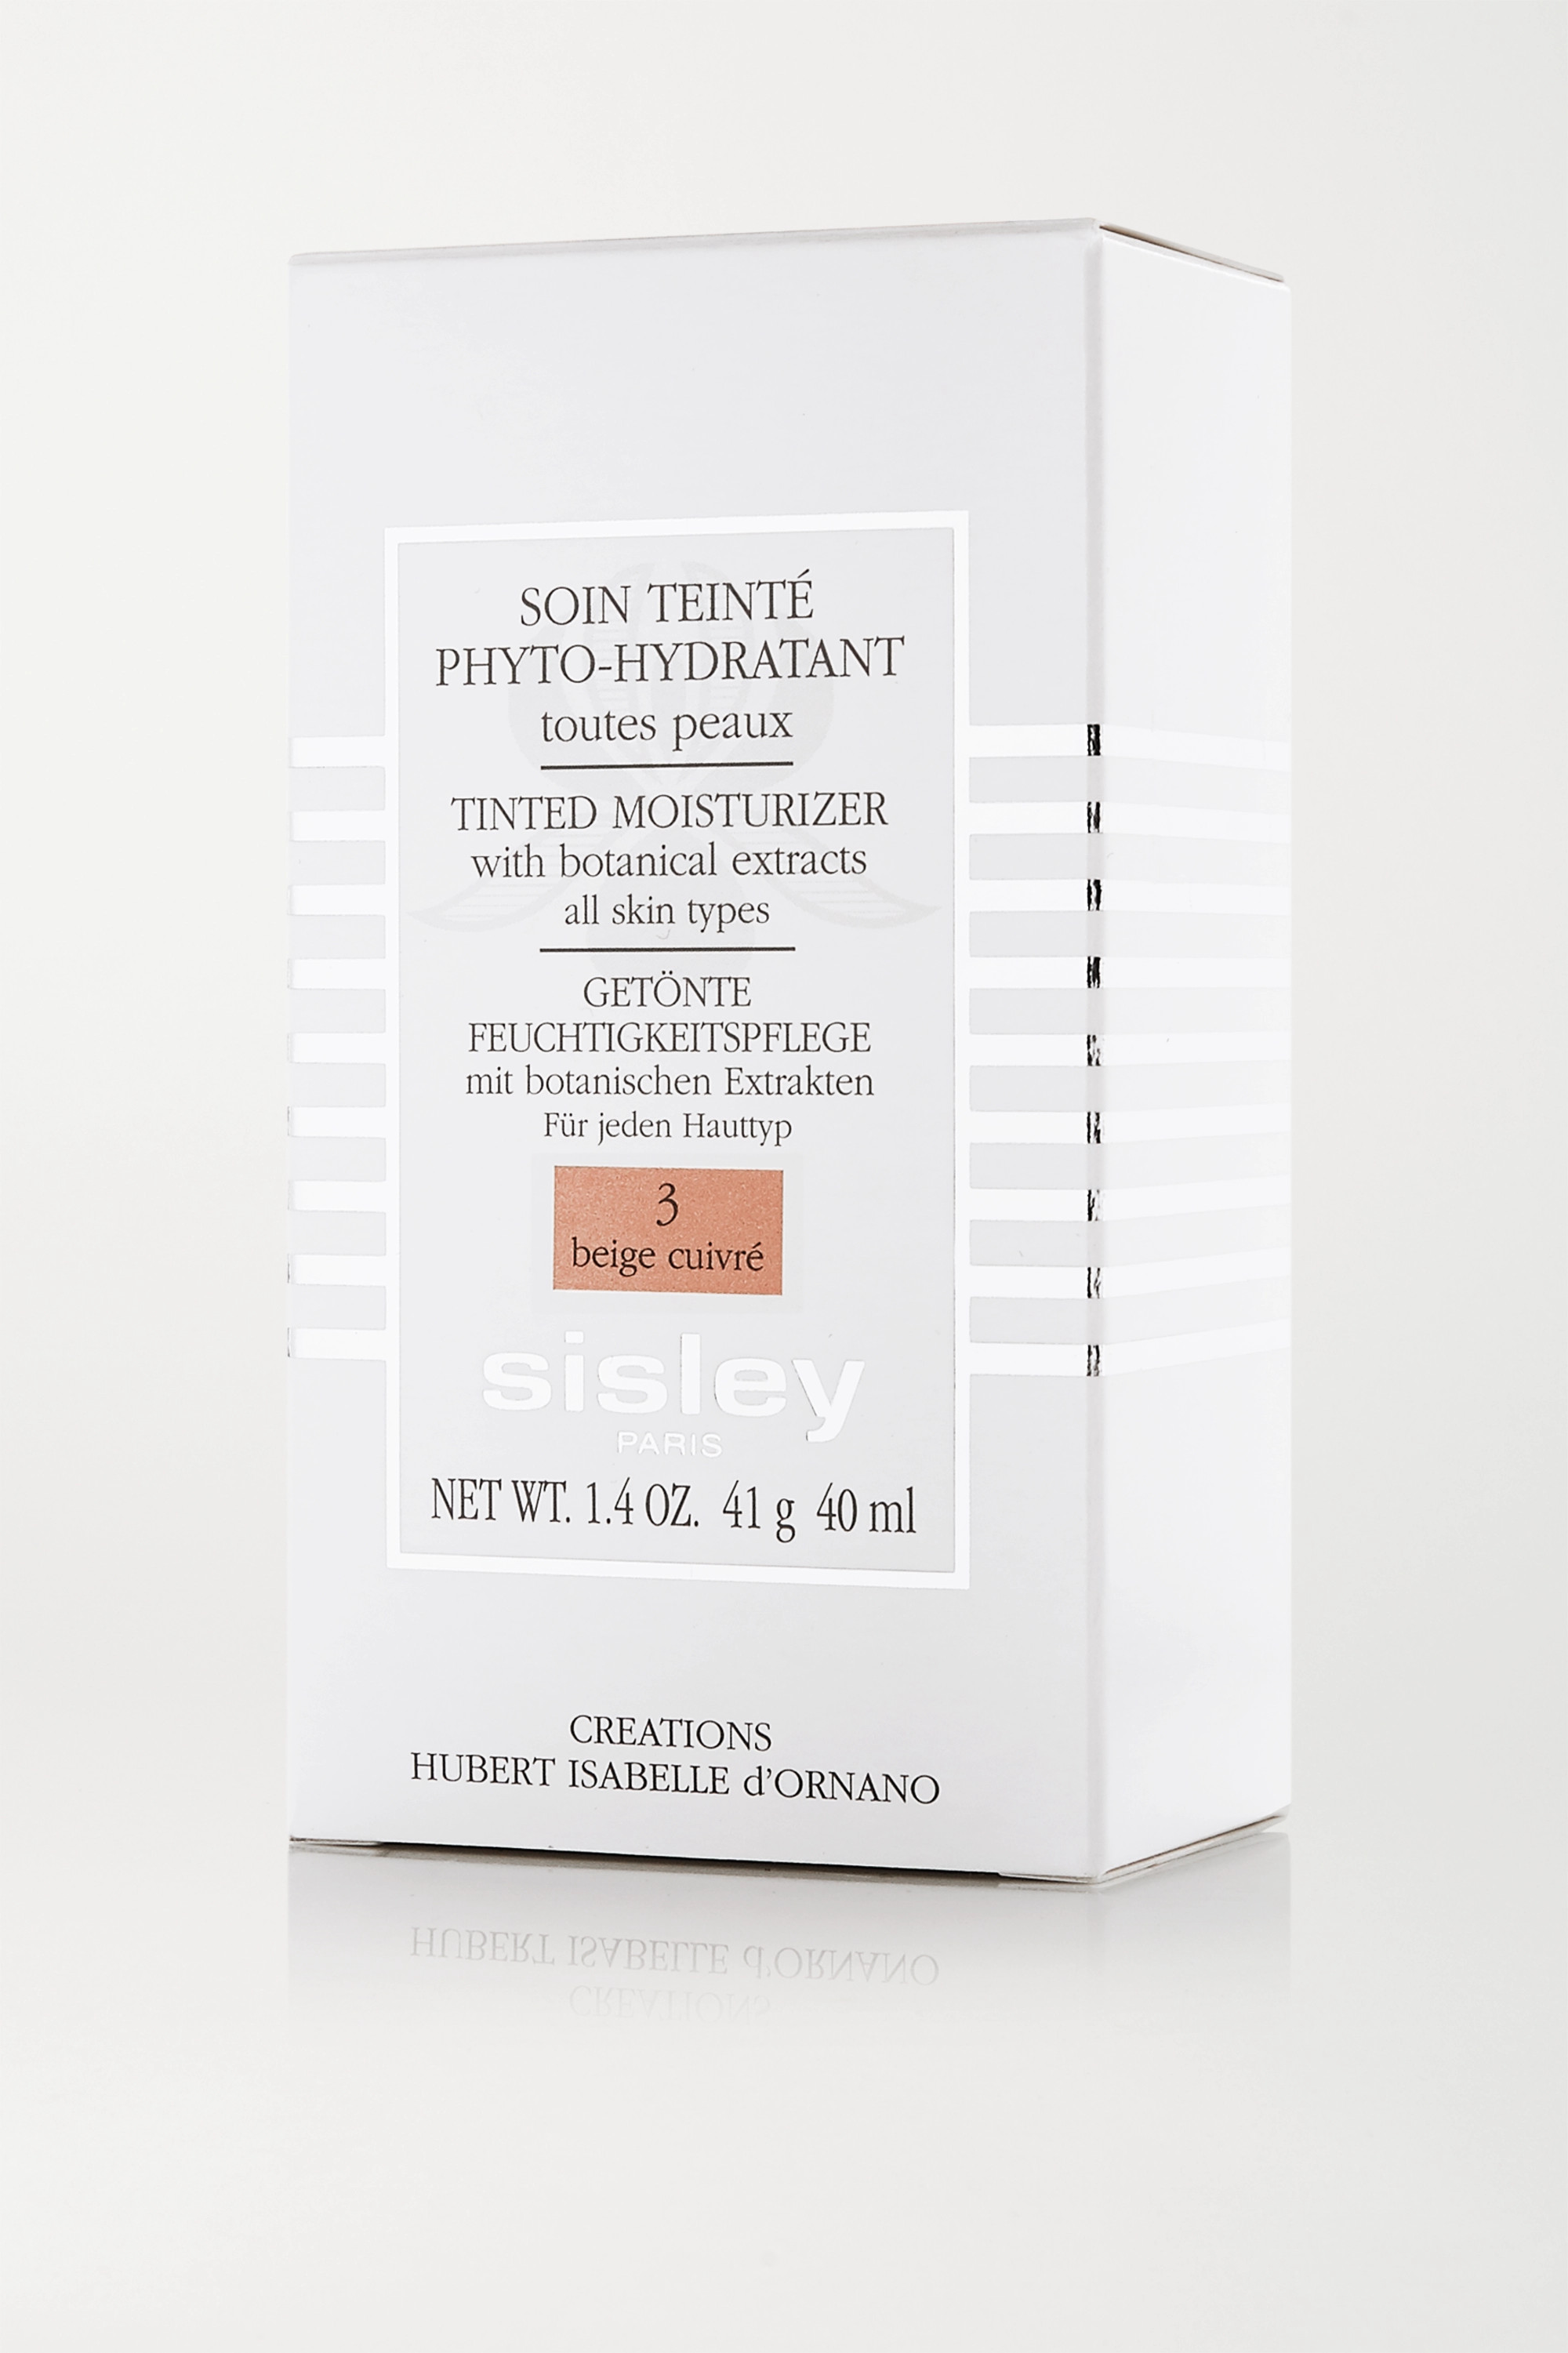 Sisley Tinted Moisturizer With Botanical Extracts - 3 Beige Cuivré, 40ml